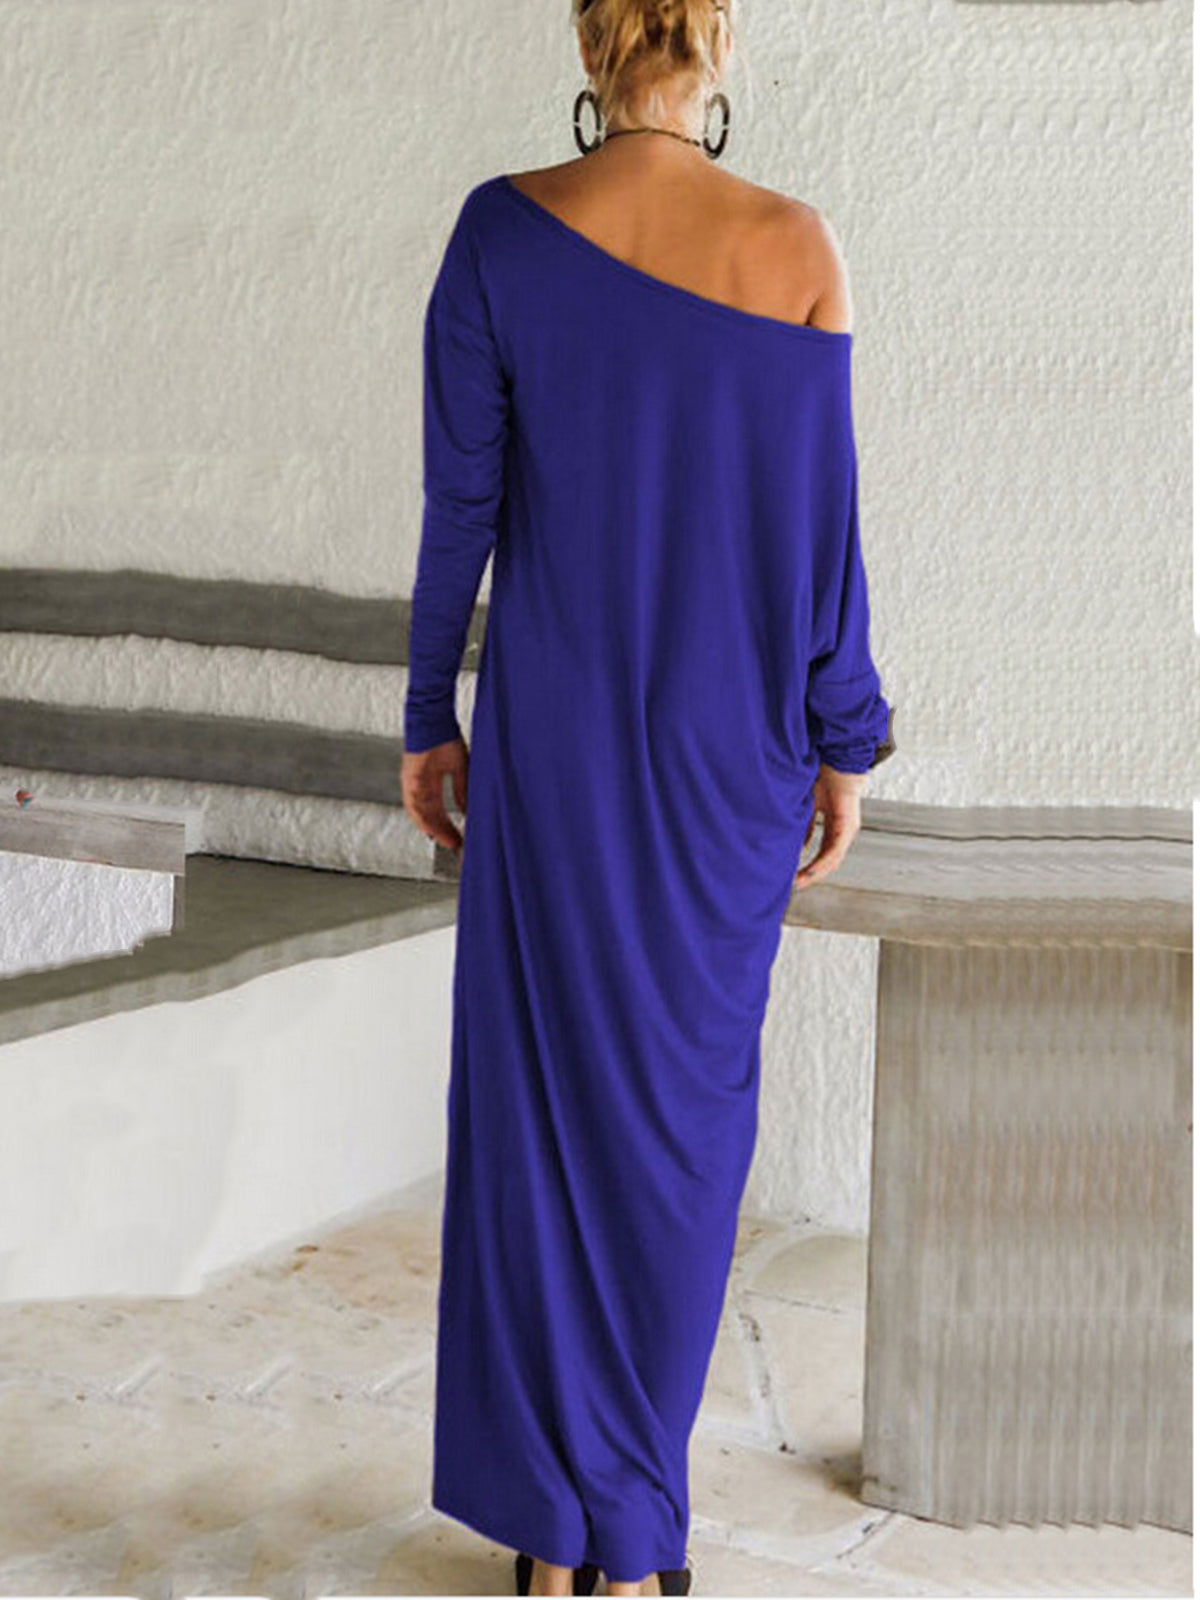 c2680aa383a4 Loose Hooded Maxi Dresses Women's Knit Off-Shoulder Wrap Dress Casual Long  Sleeves Plus Size